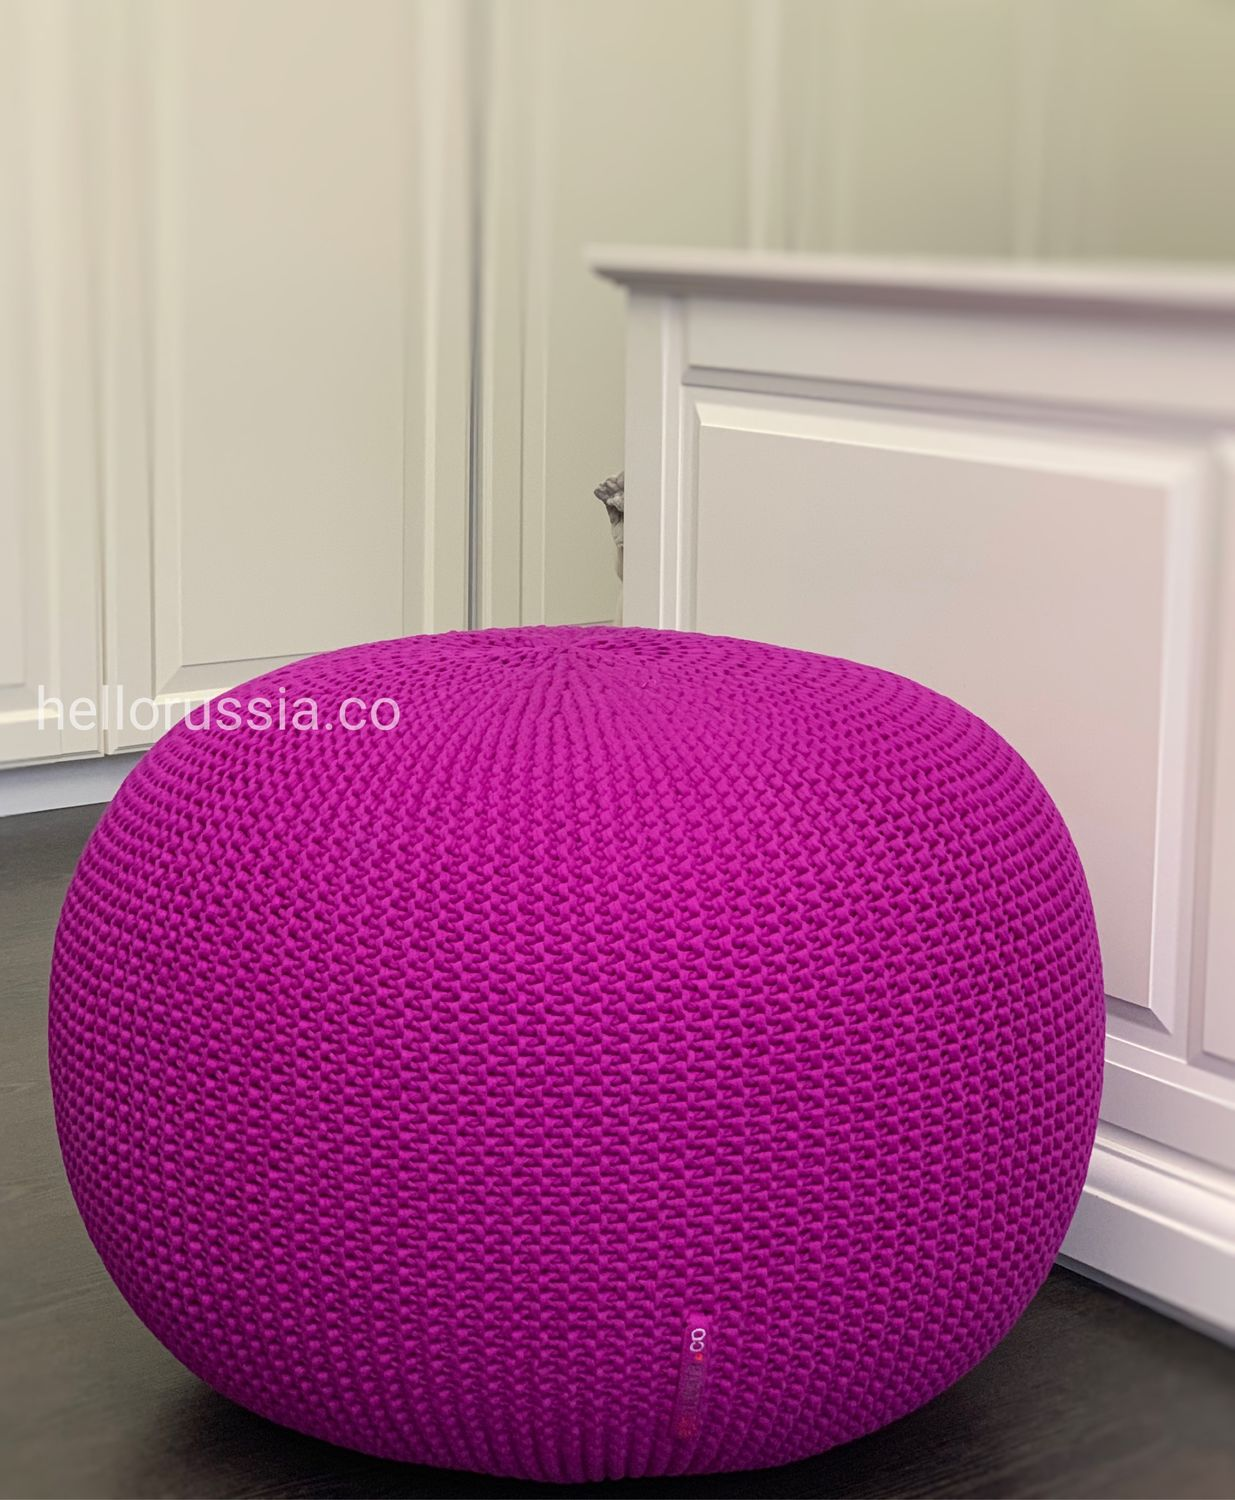 Peachy Puff Padded Stool Knitted Pouf Ottoman For Living Room Interior Pouf Shop Online On Livemaster With Shipping I4Lybcom Moscow Machost Co Dining Chair Design Ideas Machostcouk